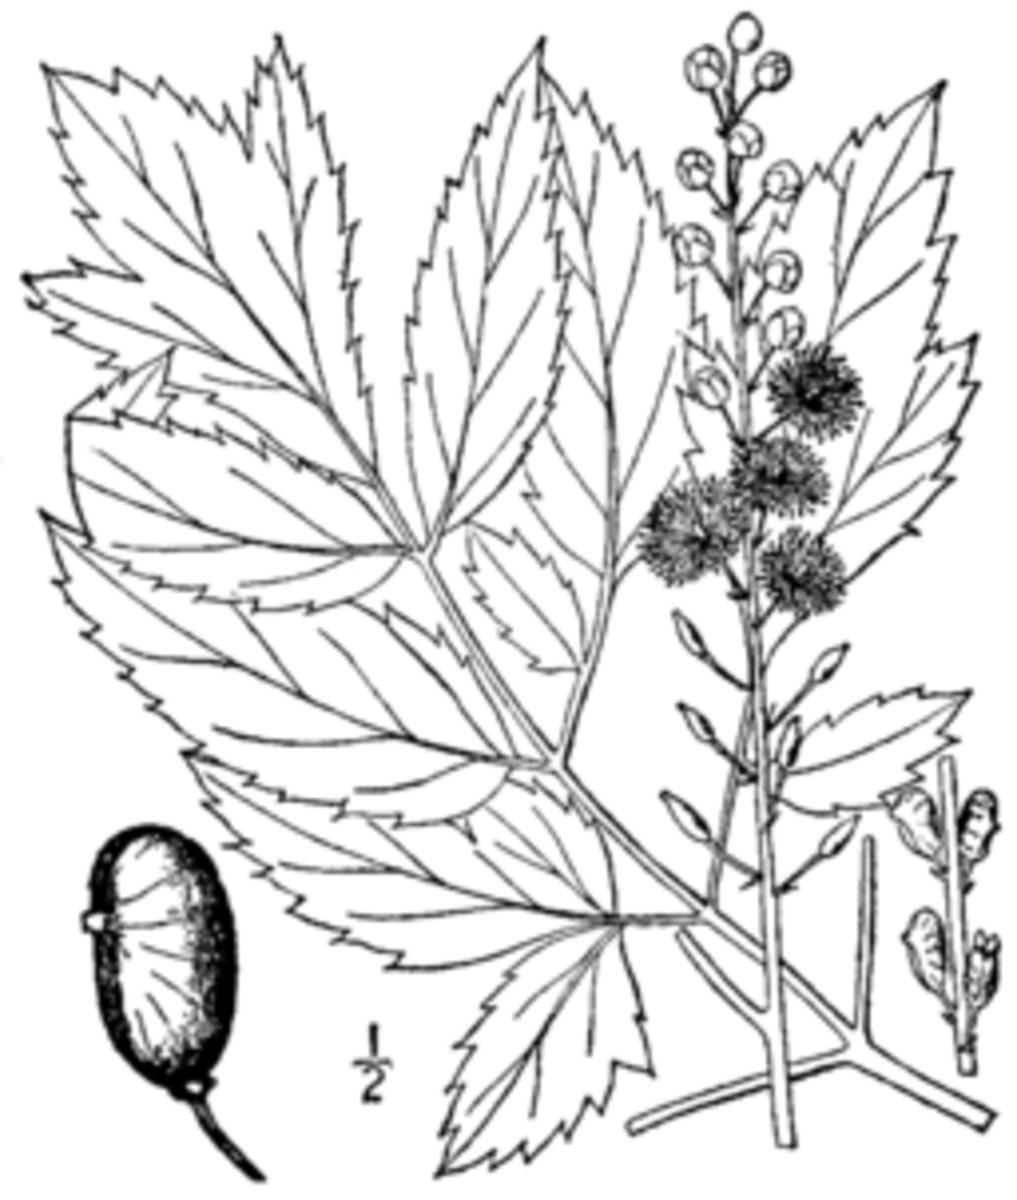 The parts of the black cohosh plant